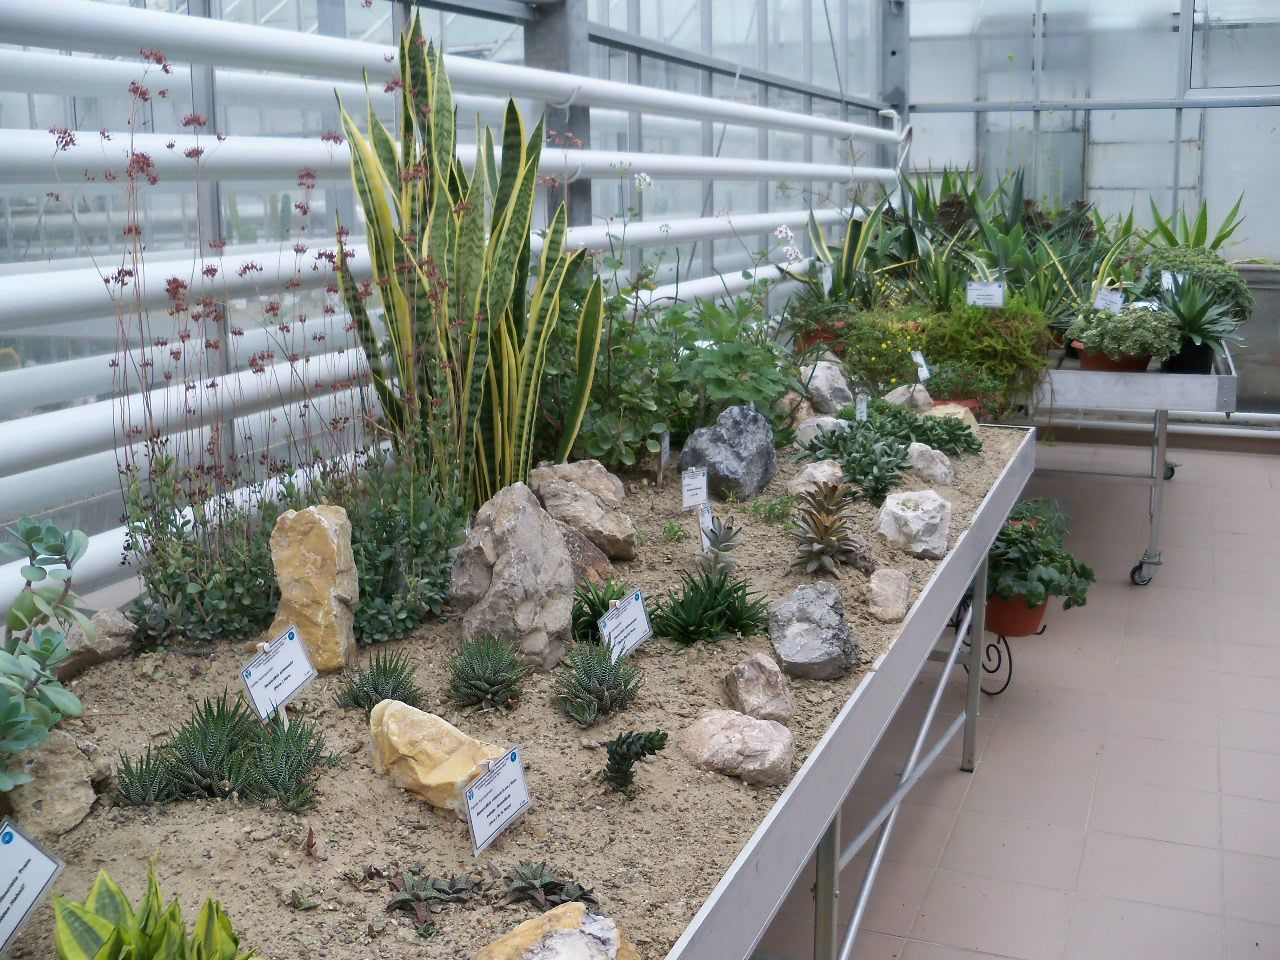 plant, growth, potted plant, greenhouse, nature, no people, day, high angle view, plant nursery, outdoors, green color, architecture, freshness